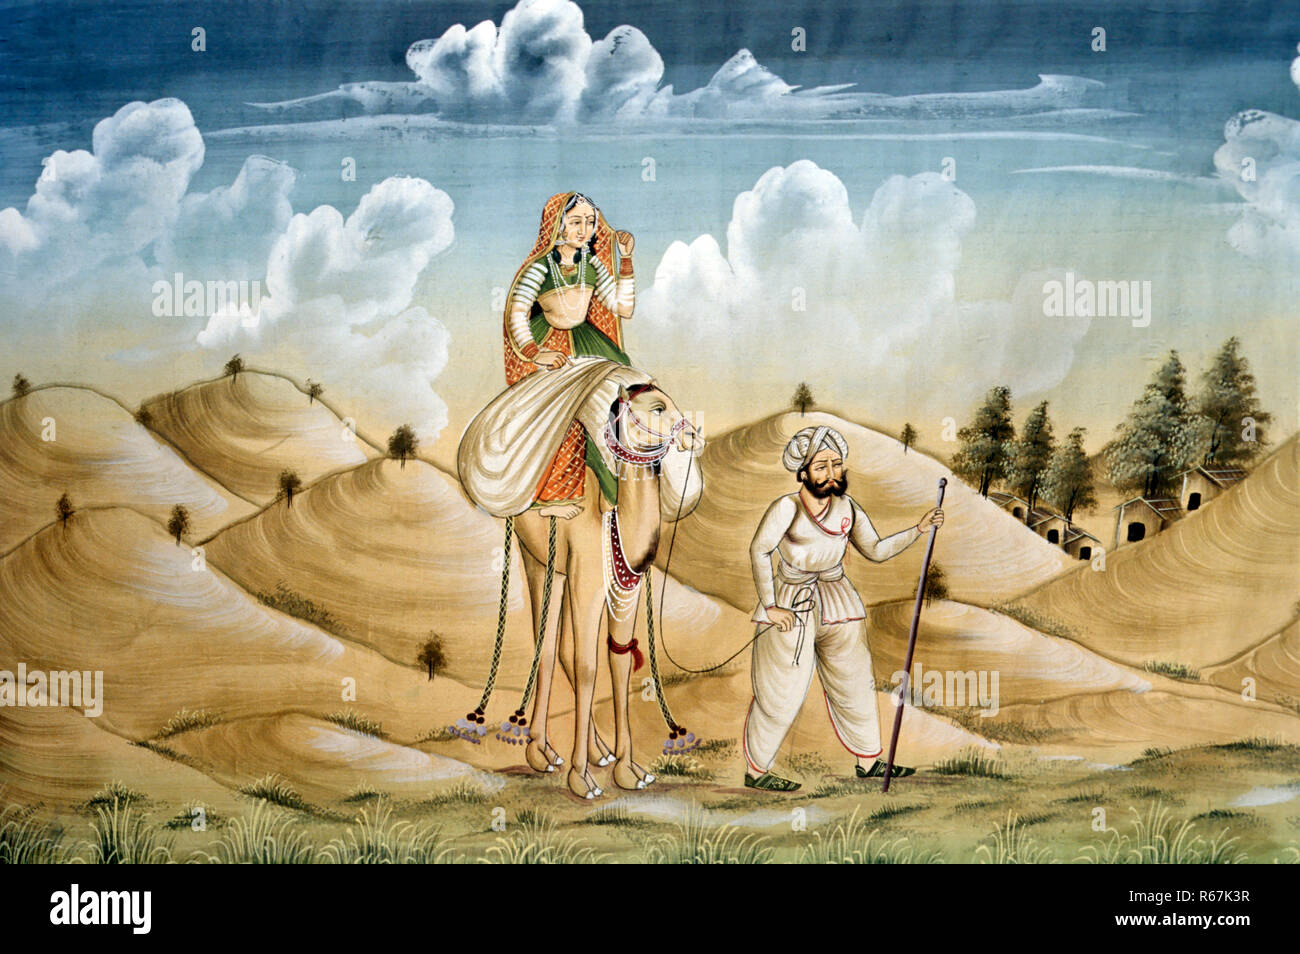 miniature painting on silk, lonely travelers, rajasthan - Stock Image